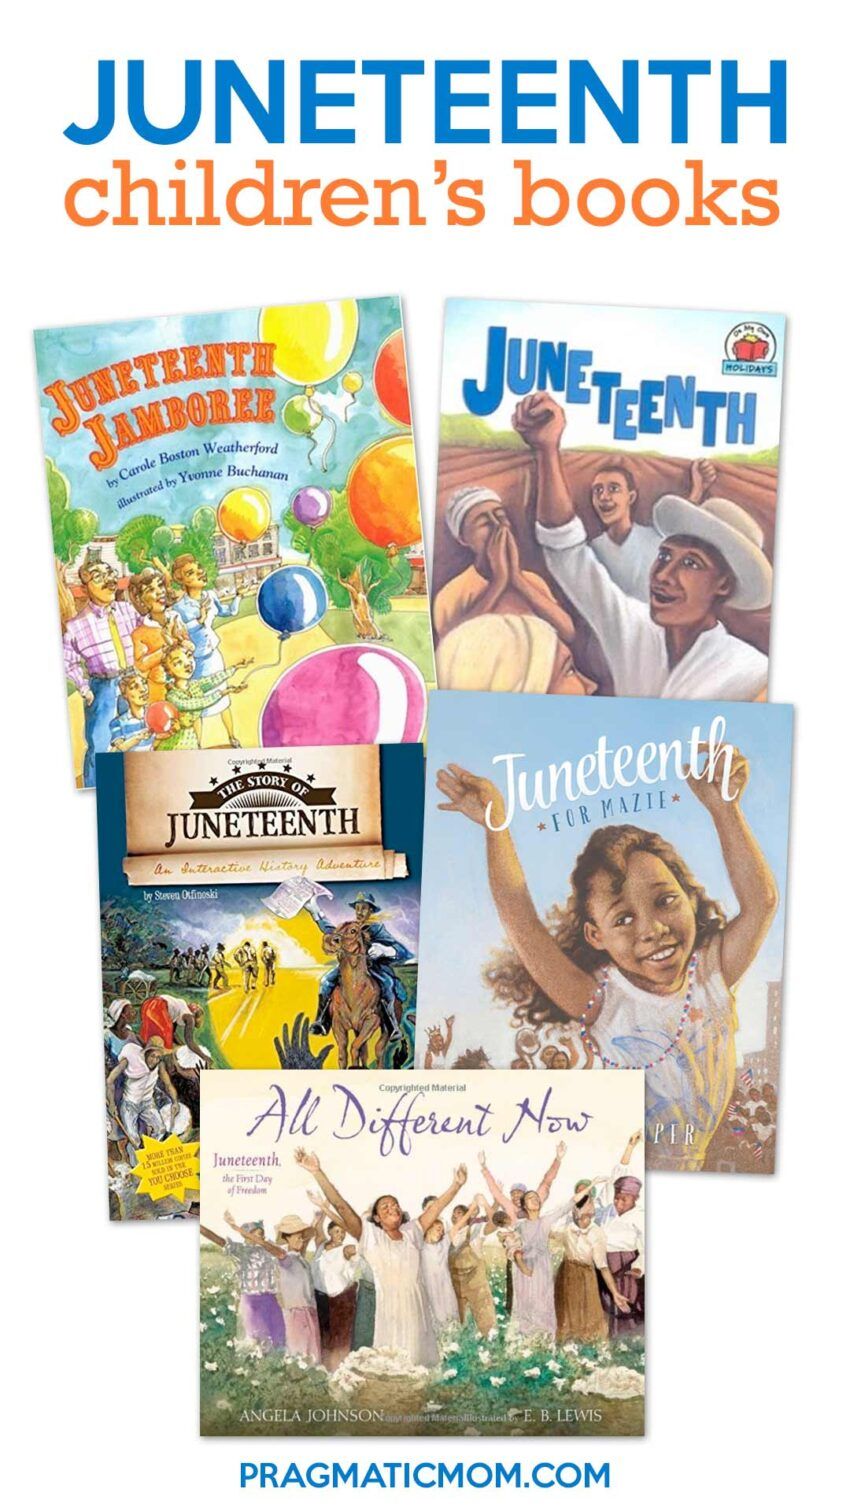 Juneteenth Children's Books